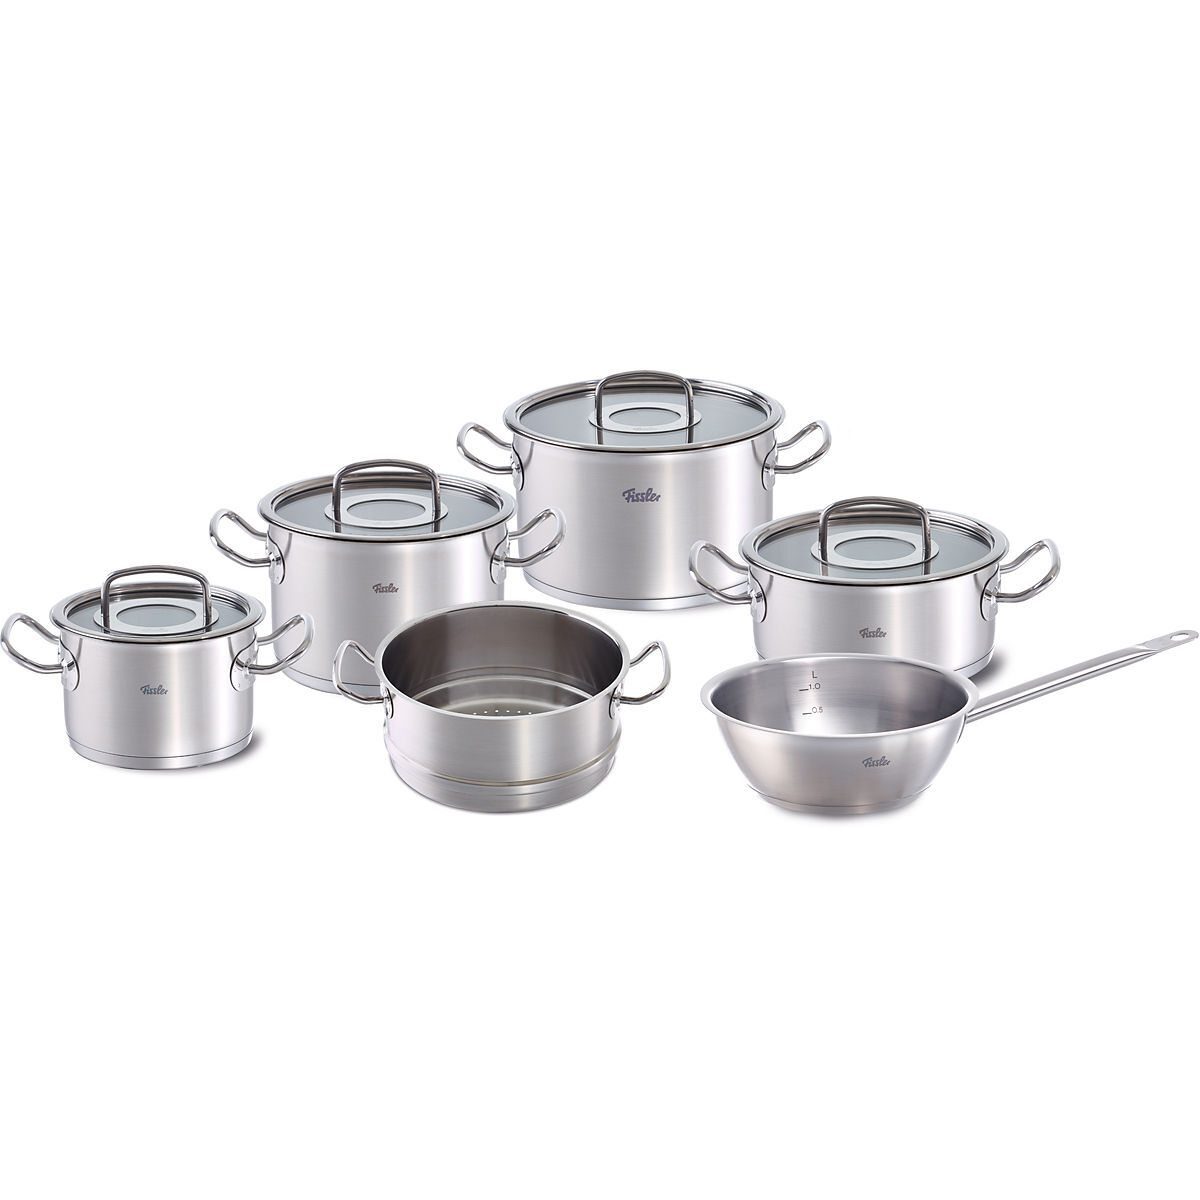 Fissler Profi Collection Set Fissler Topf Set Original Profi Collection 5 Teilig